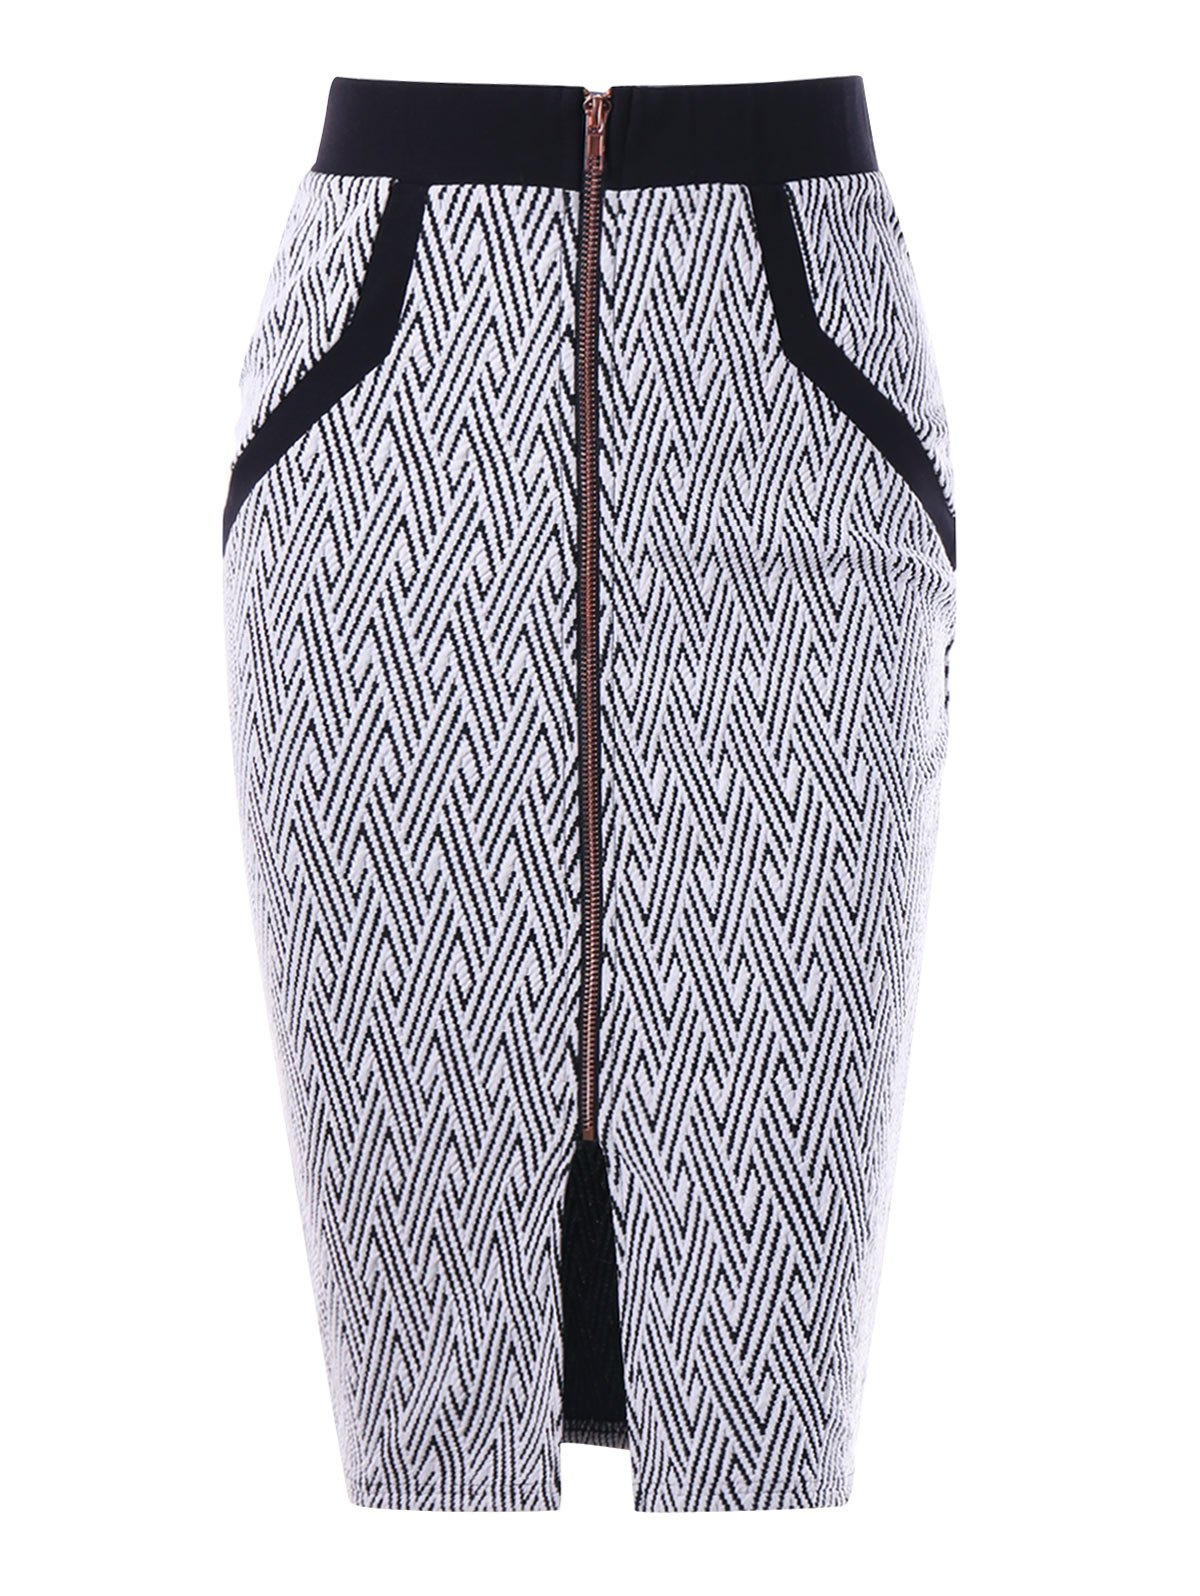 Monochrome Zip Front Pencil Skirt - WHITE/BLACK XL